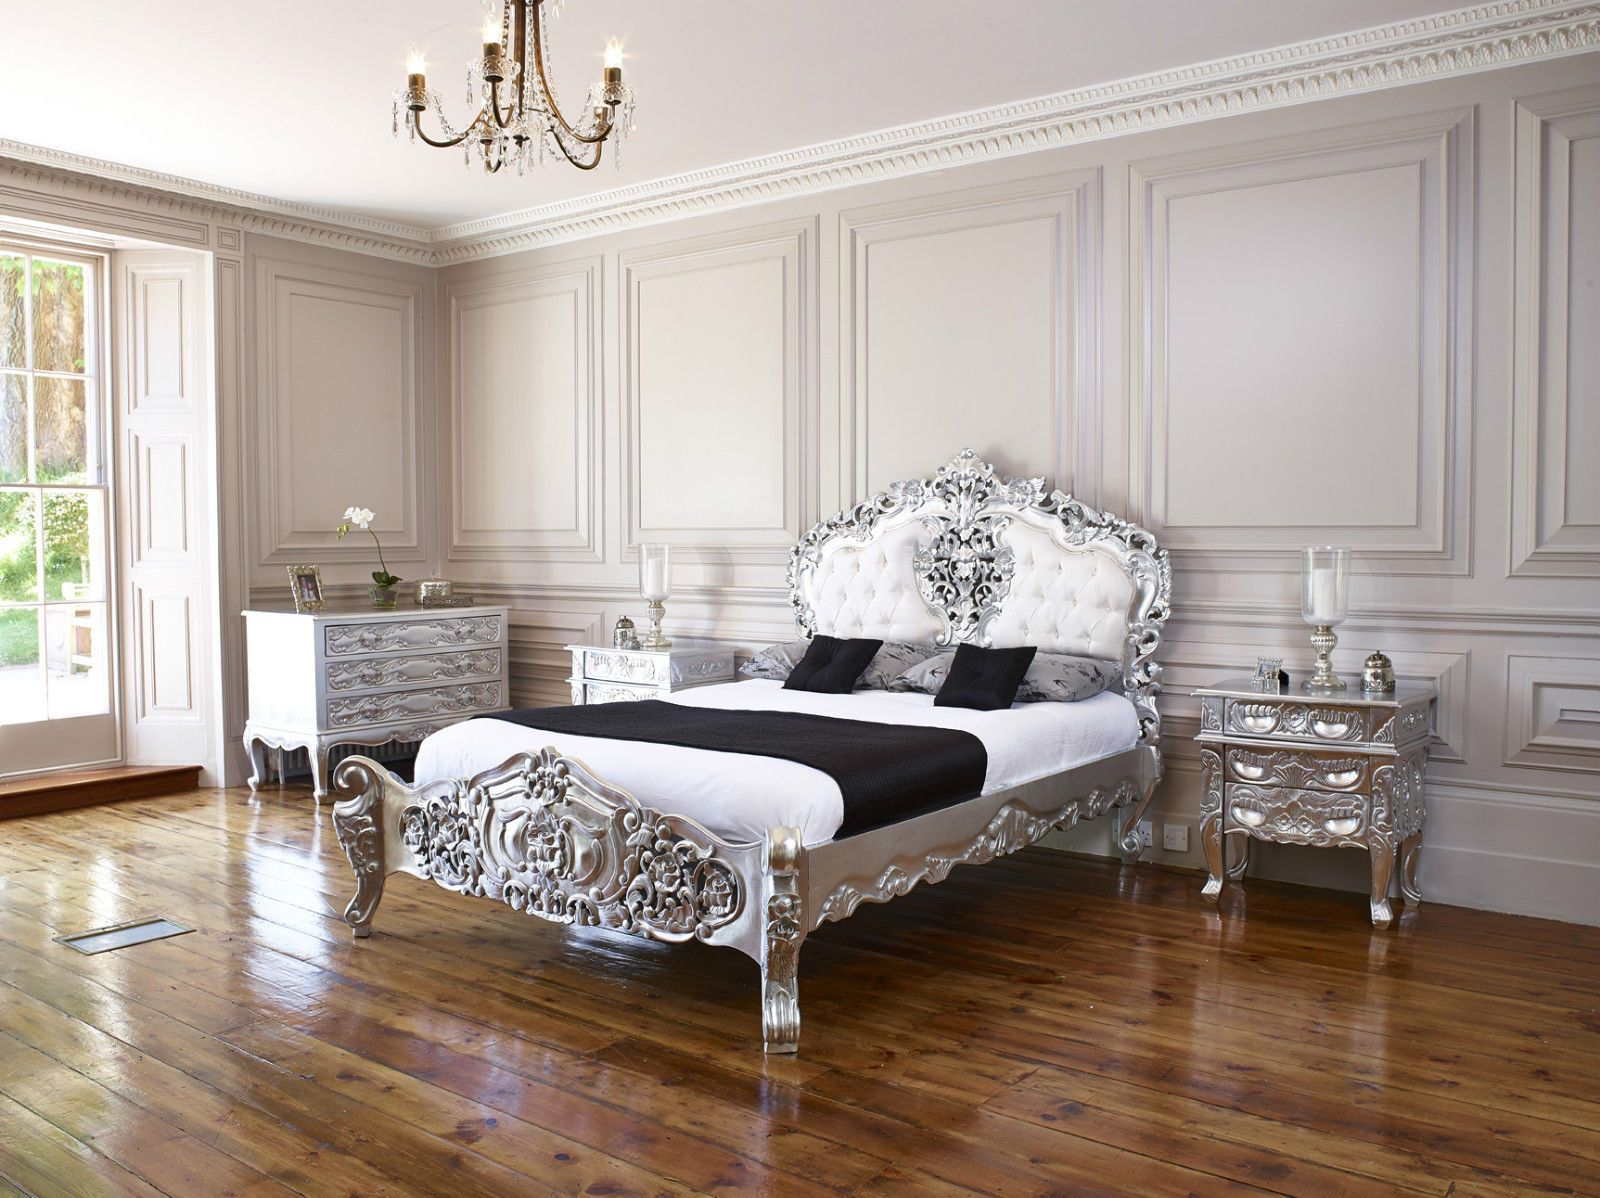 Silver leaf French / Italian Rococo super king size bed